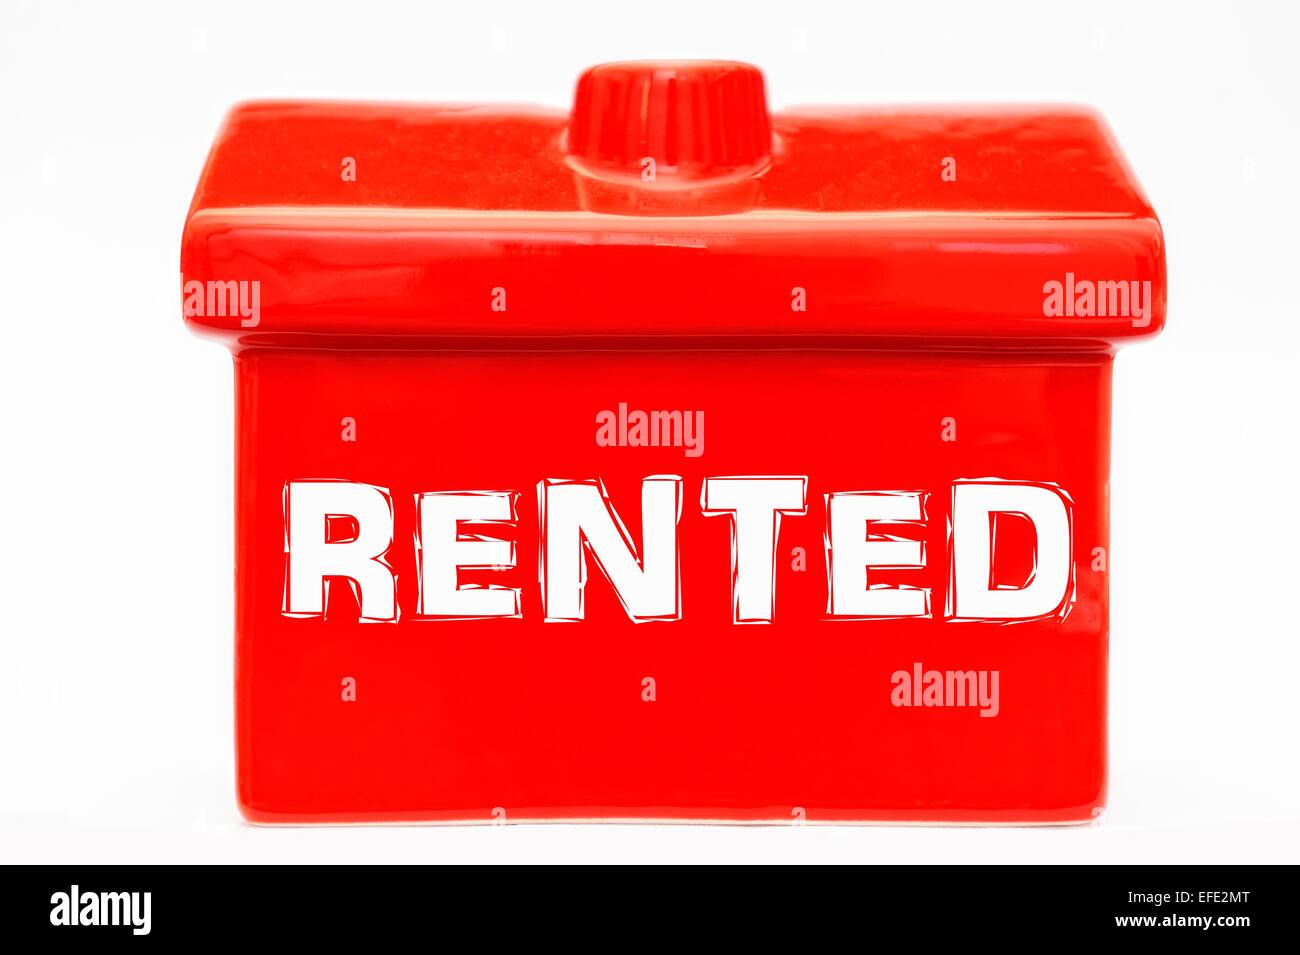 Rented white text on a red house - Stock Image